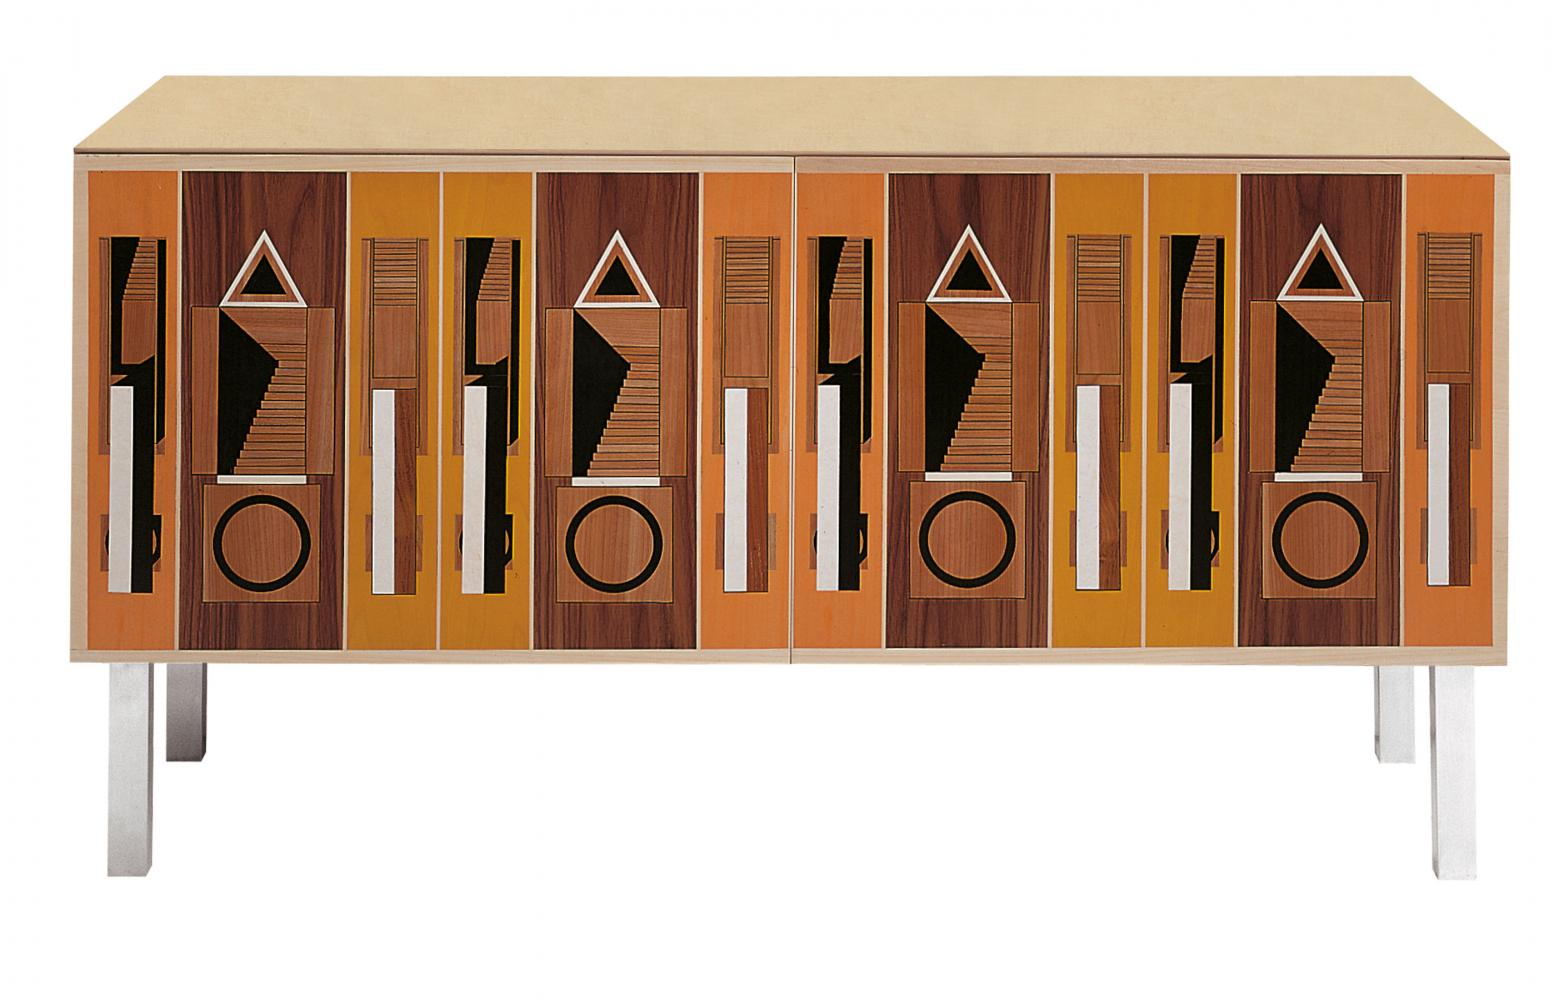 Modern limited edition sideboard in wood with inlays designed by Aldo Rossi for luxury home